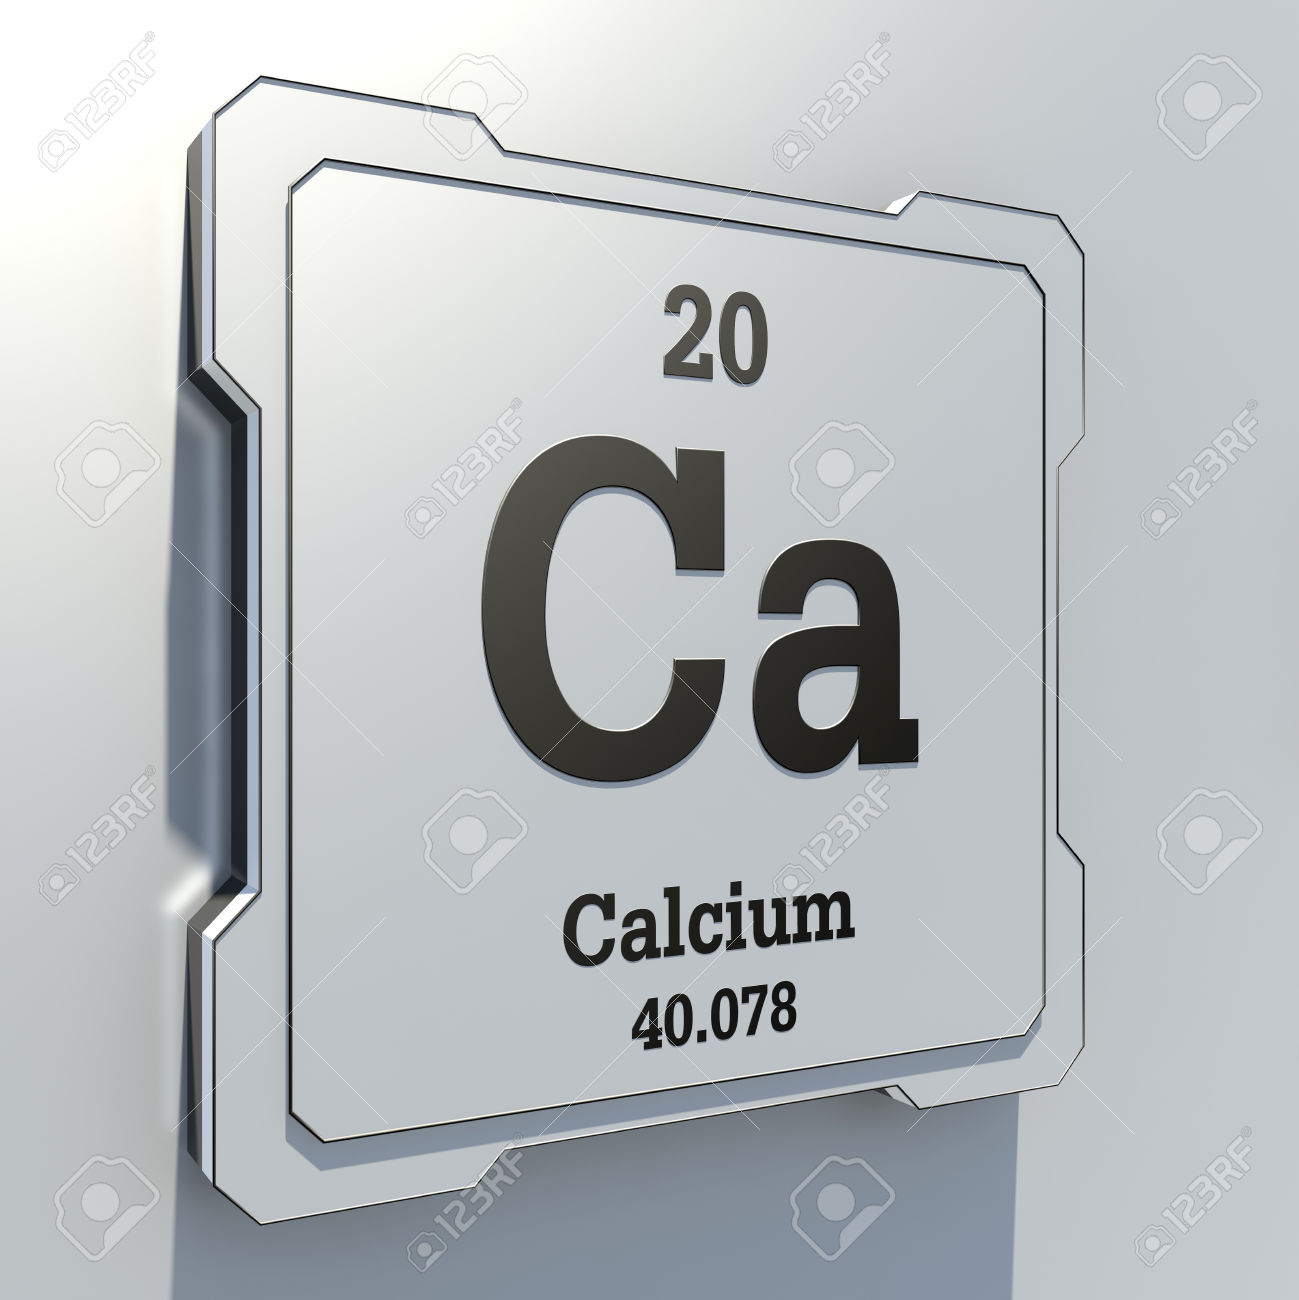 calcium element uses - HD 1299×1300